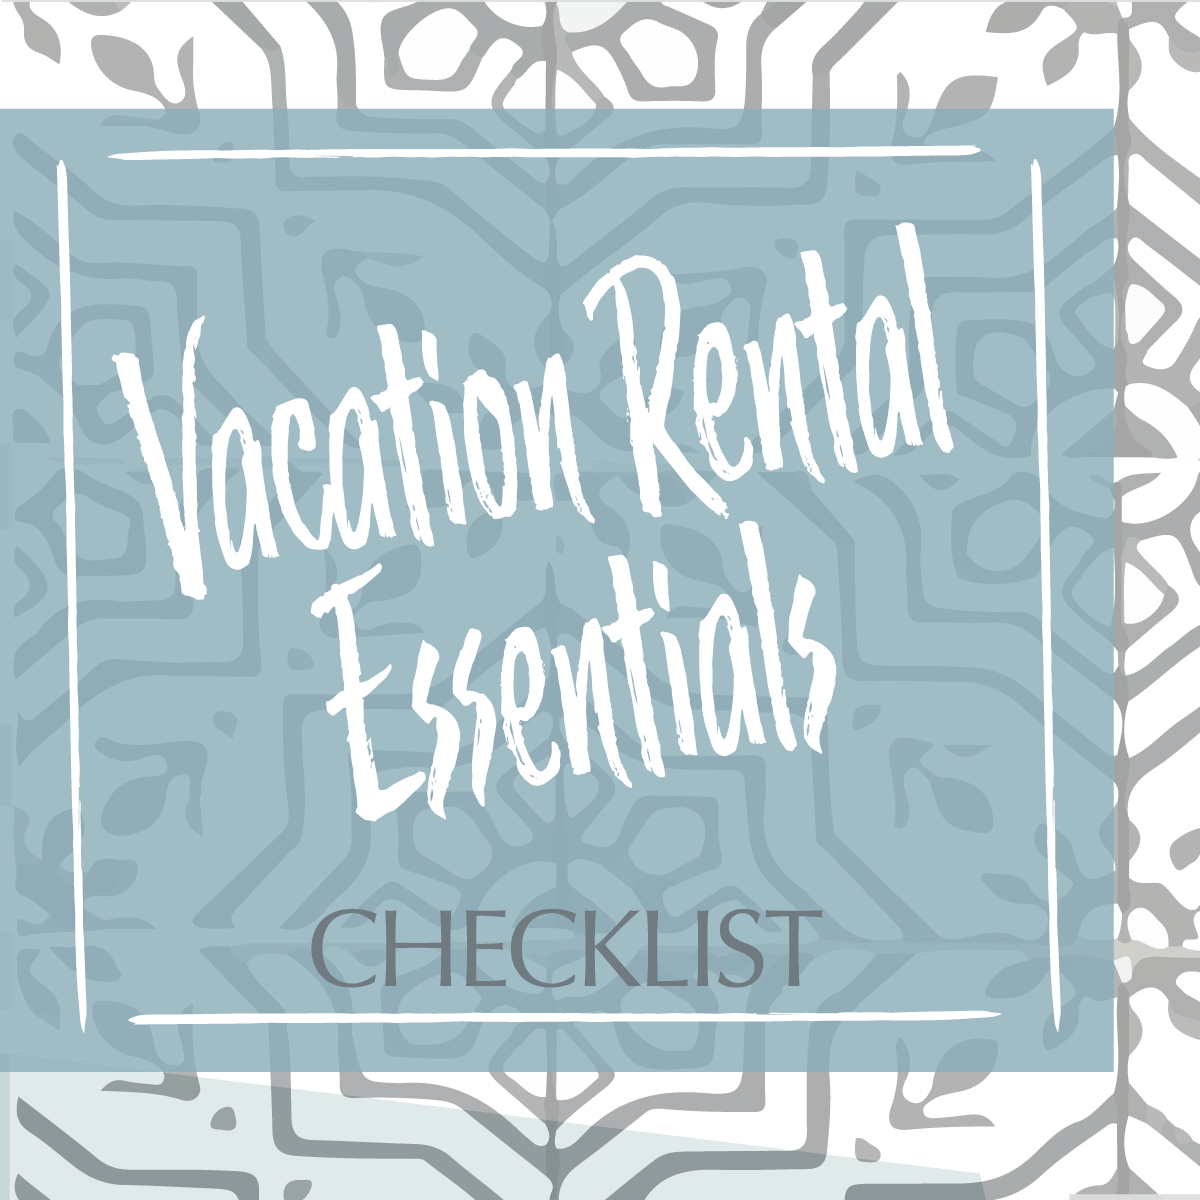 Vacation Rental Checklist.png